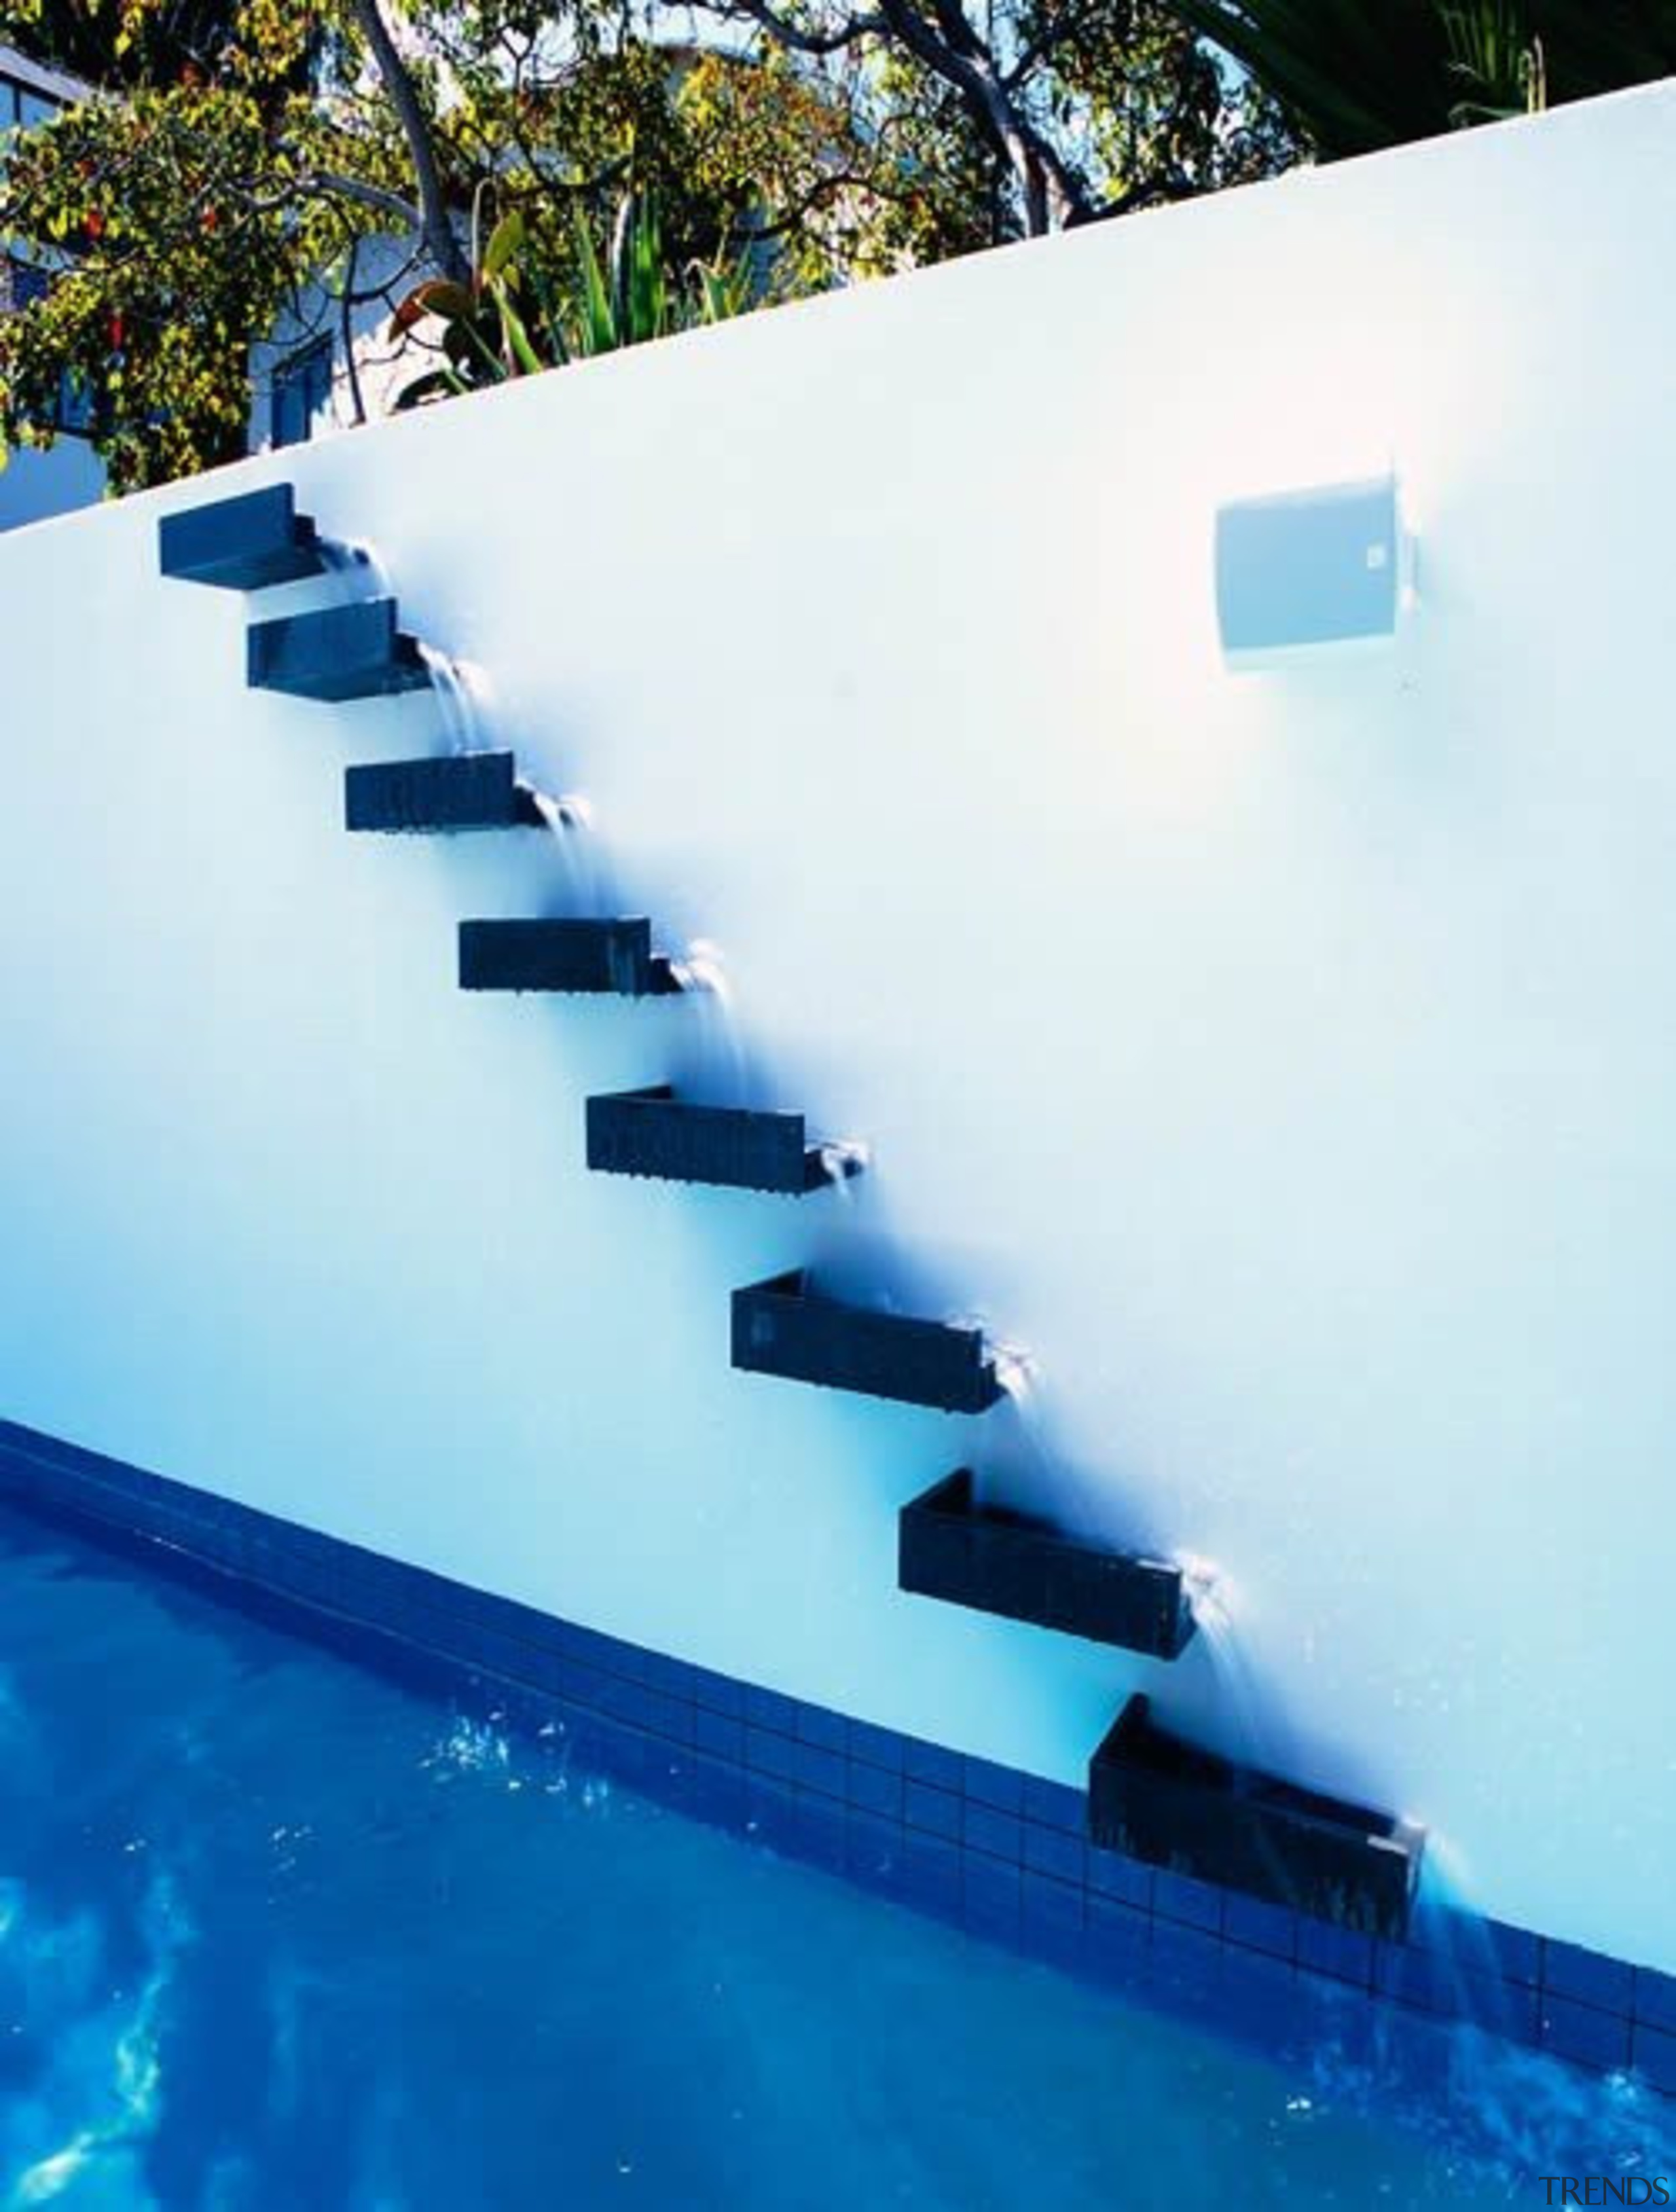 Waterfall - blue | reflection | sky | blue, reflection, sky, swimming pool, water, white, blue